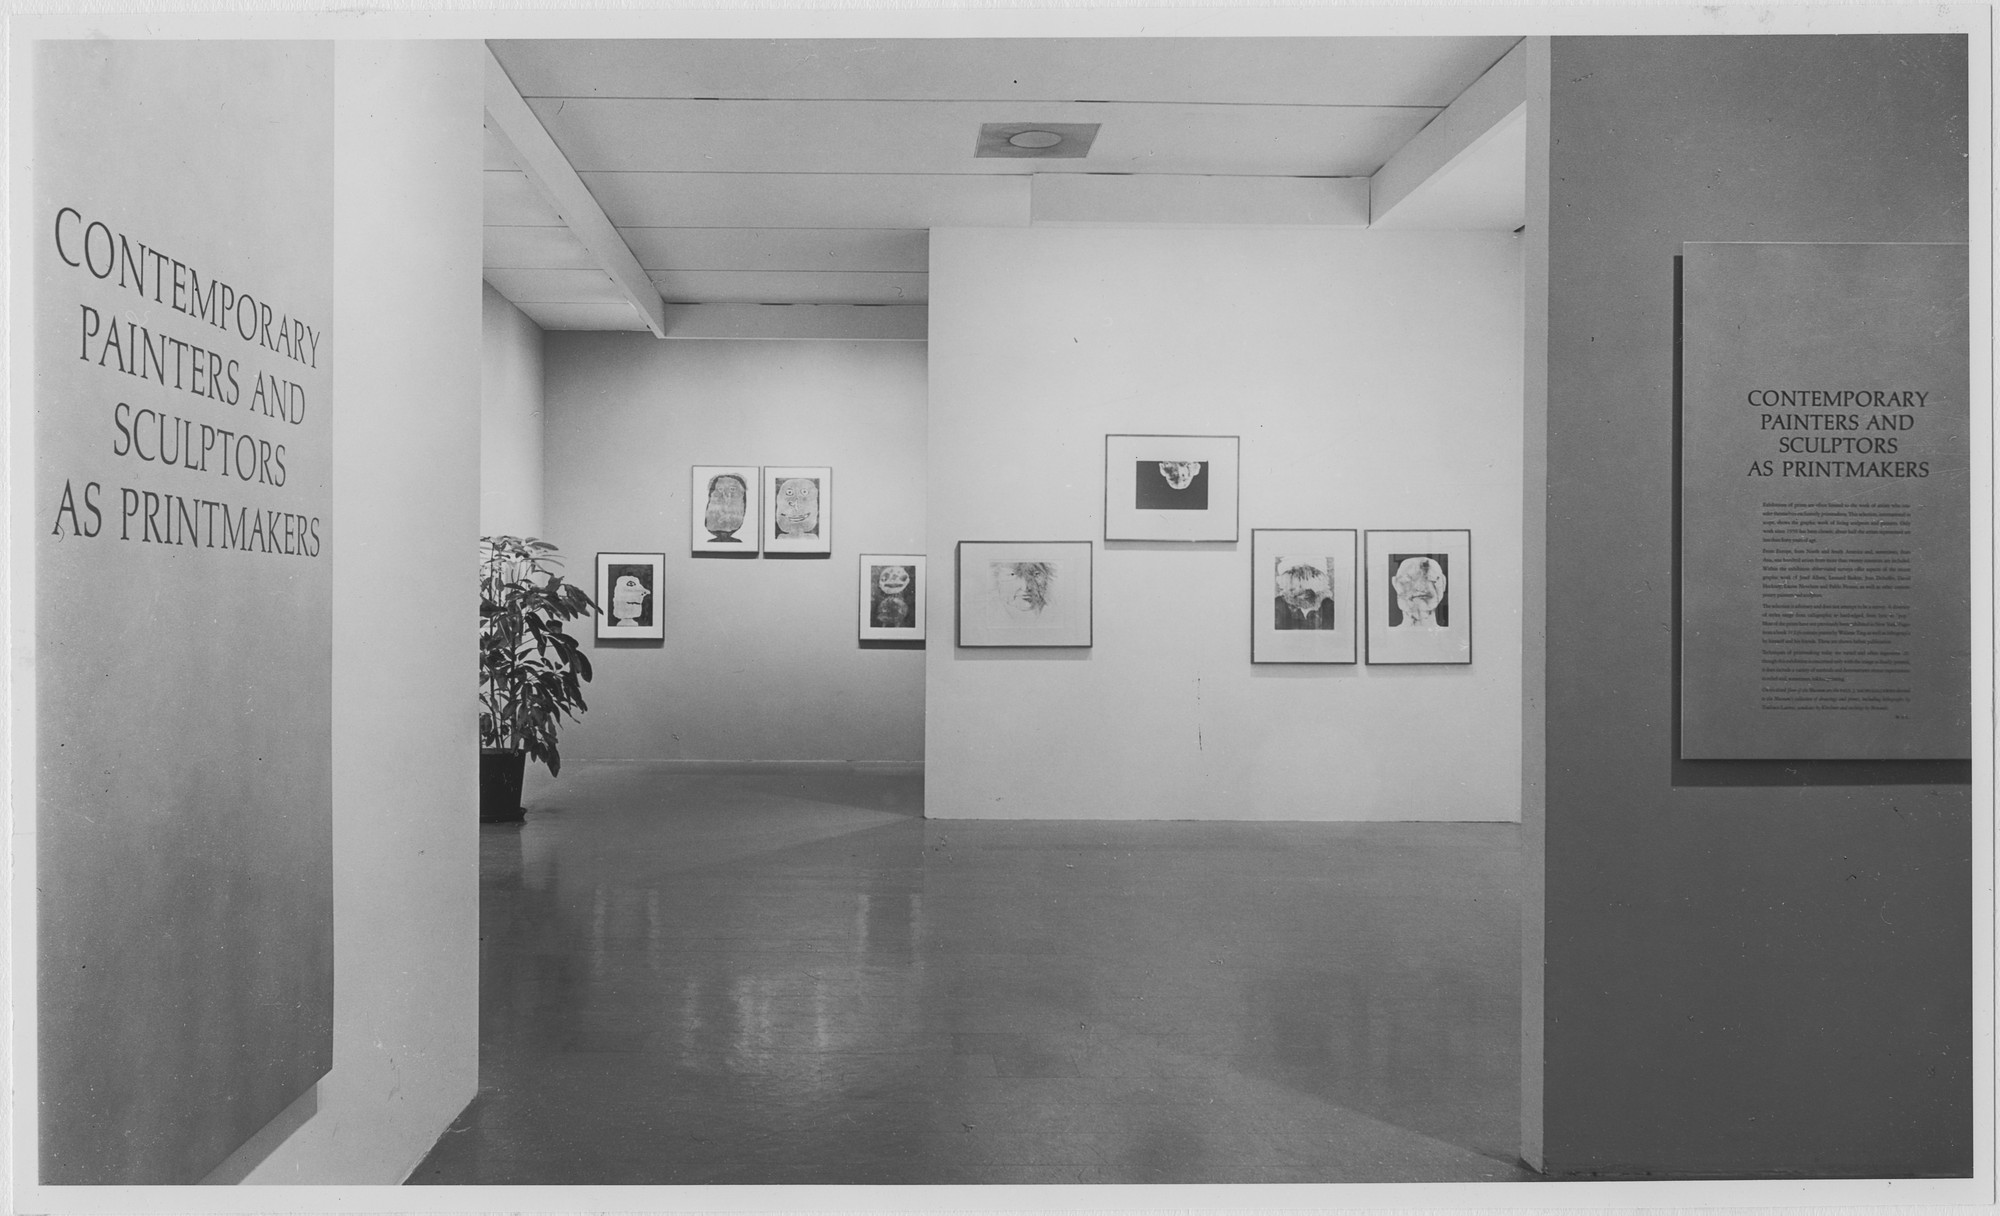 "Installation view of the exhibition, ""Contemporary Painters and Sculptors as Printmakers."" September 15, 1964–October 24, 1964. Photographic Archive. The Museum of Modern Art Archives, New York. IN747.1. Photograph by Rolf Petersen."